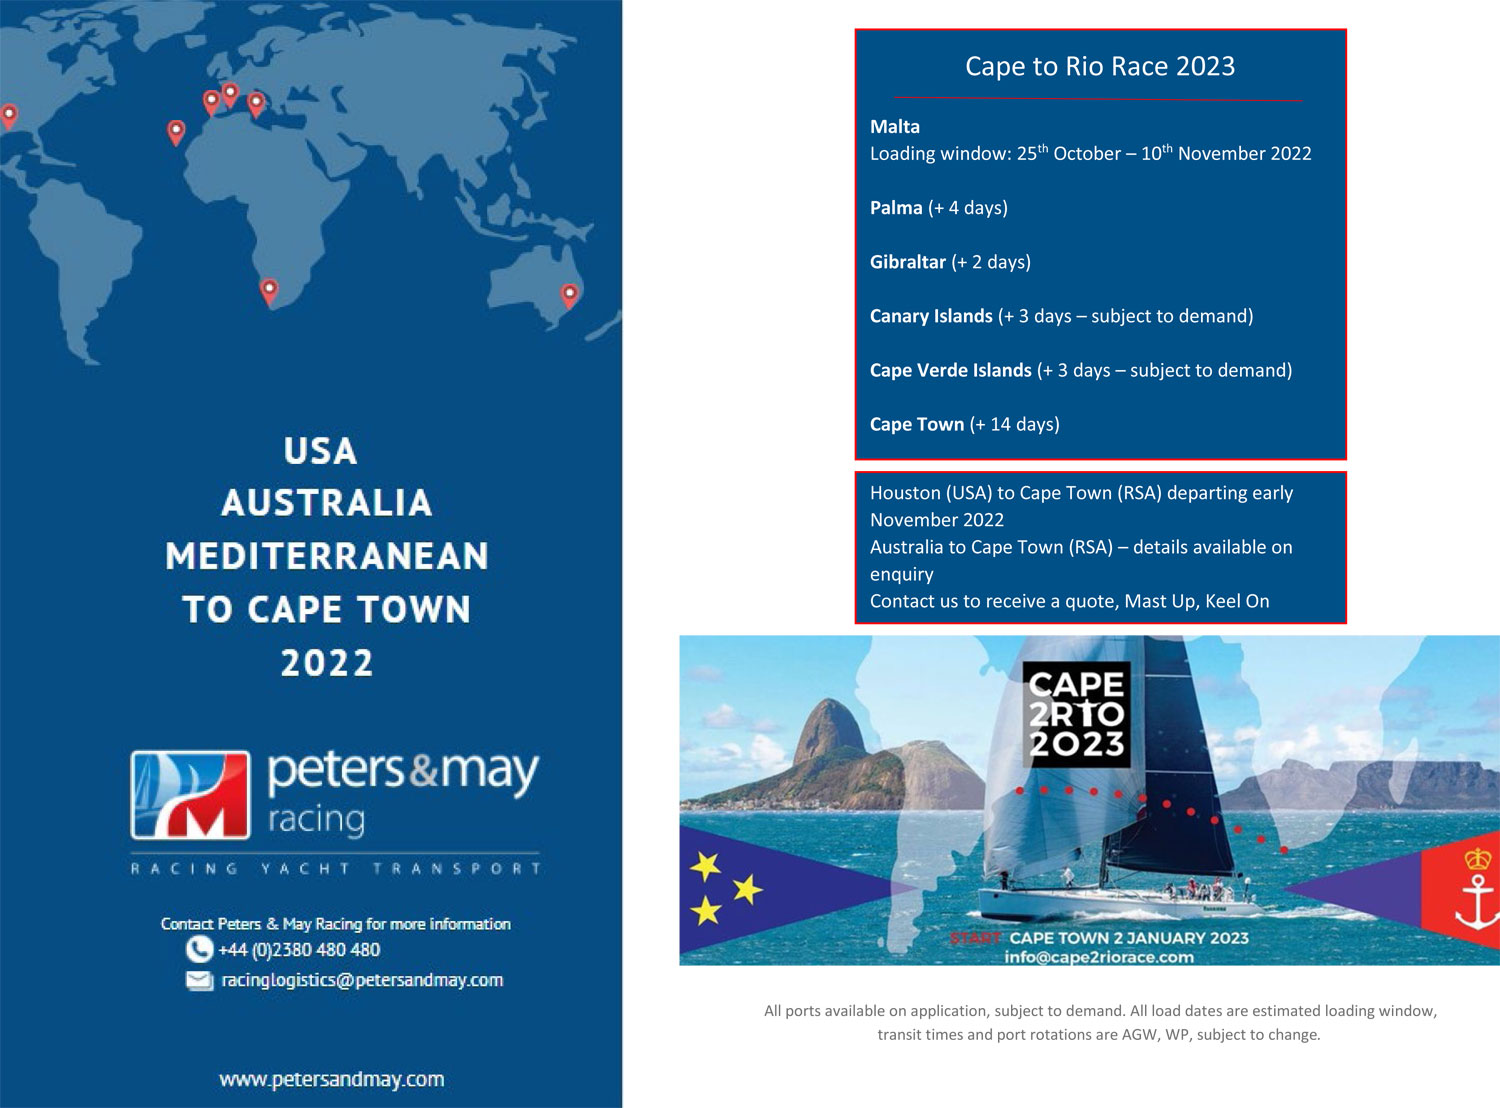 Cape 2Rio Race 2023 – Shipment ex USA 2022 from Galverston Bay